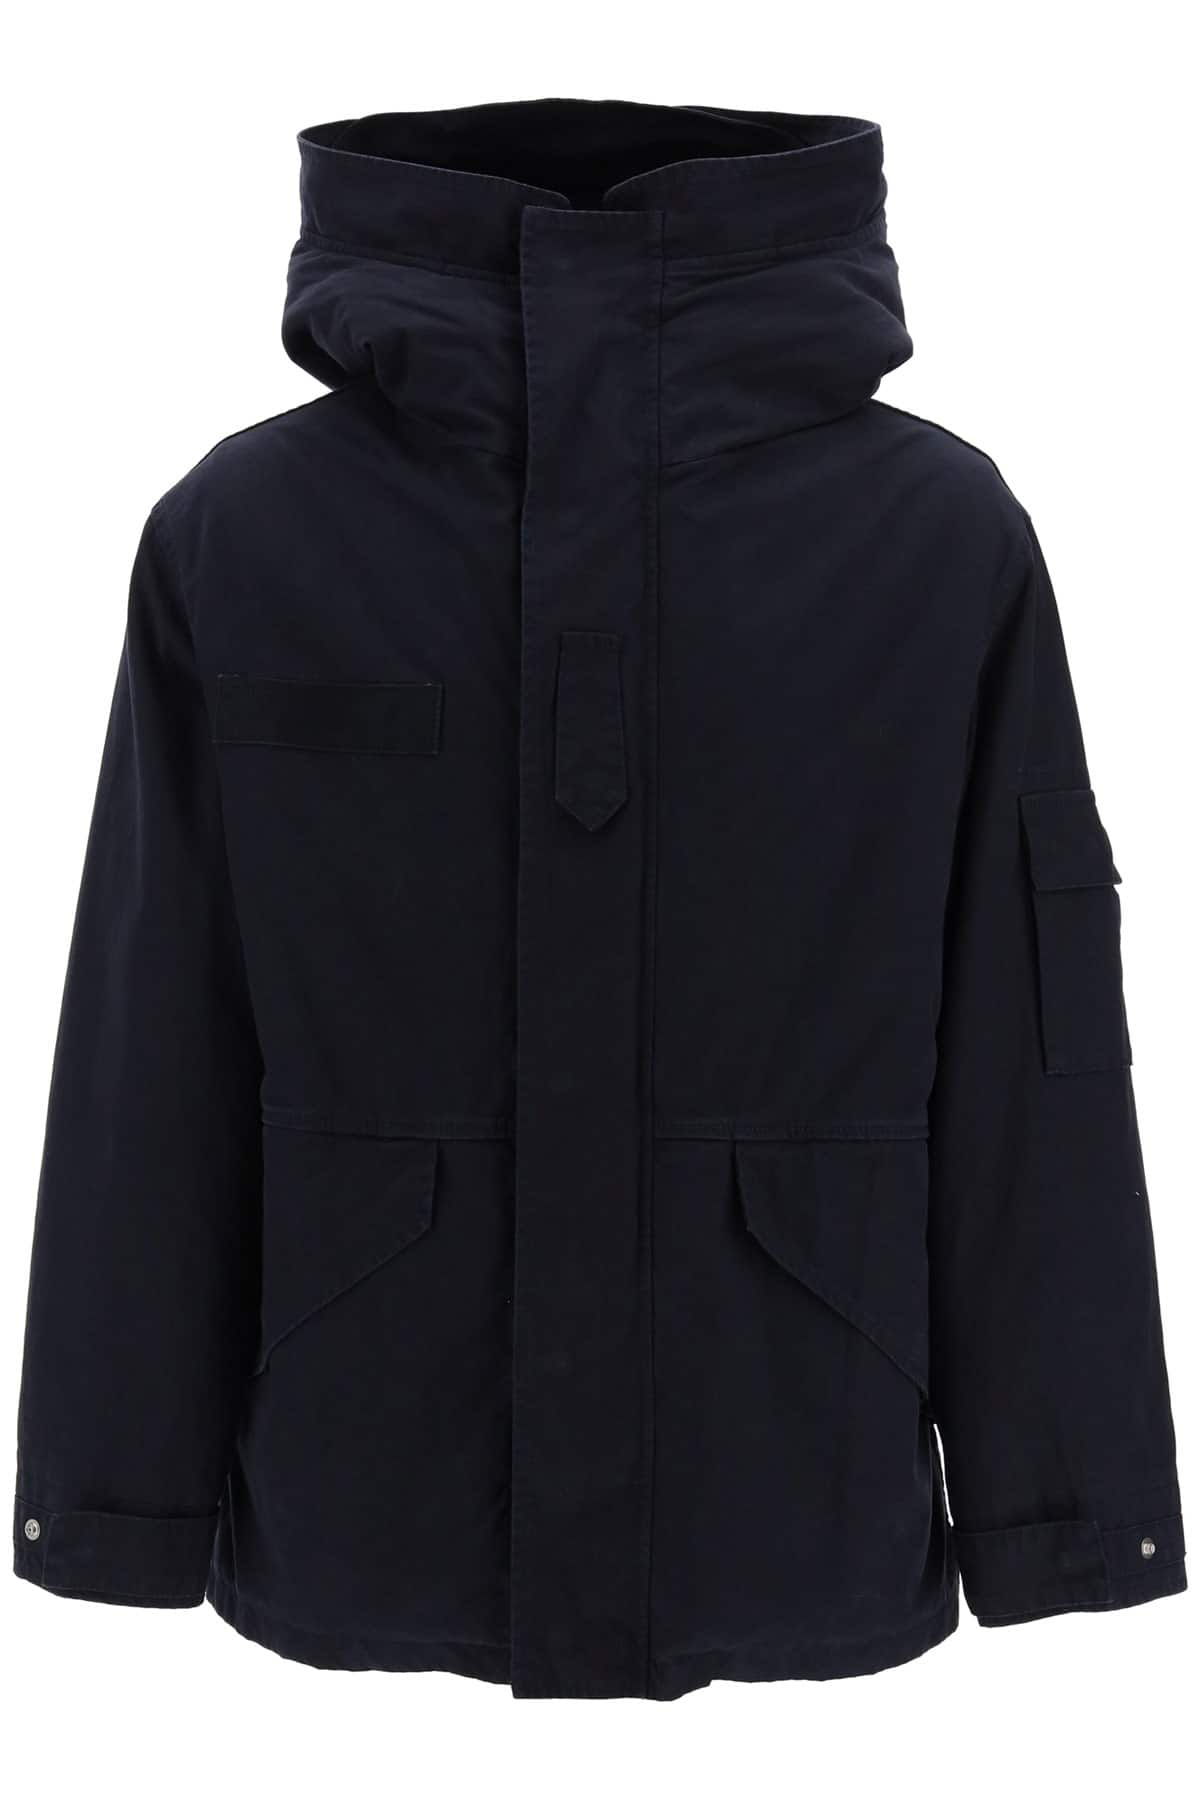 MR & MRS ITALY MIDI CURTAIN PARKA WITH REMOVABLE FUR INTERIOR M Blue Cotton, Fur